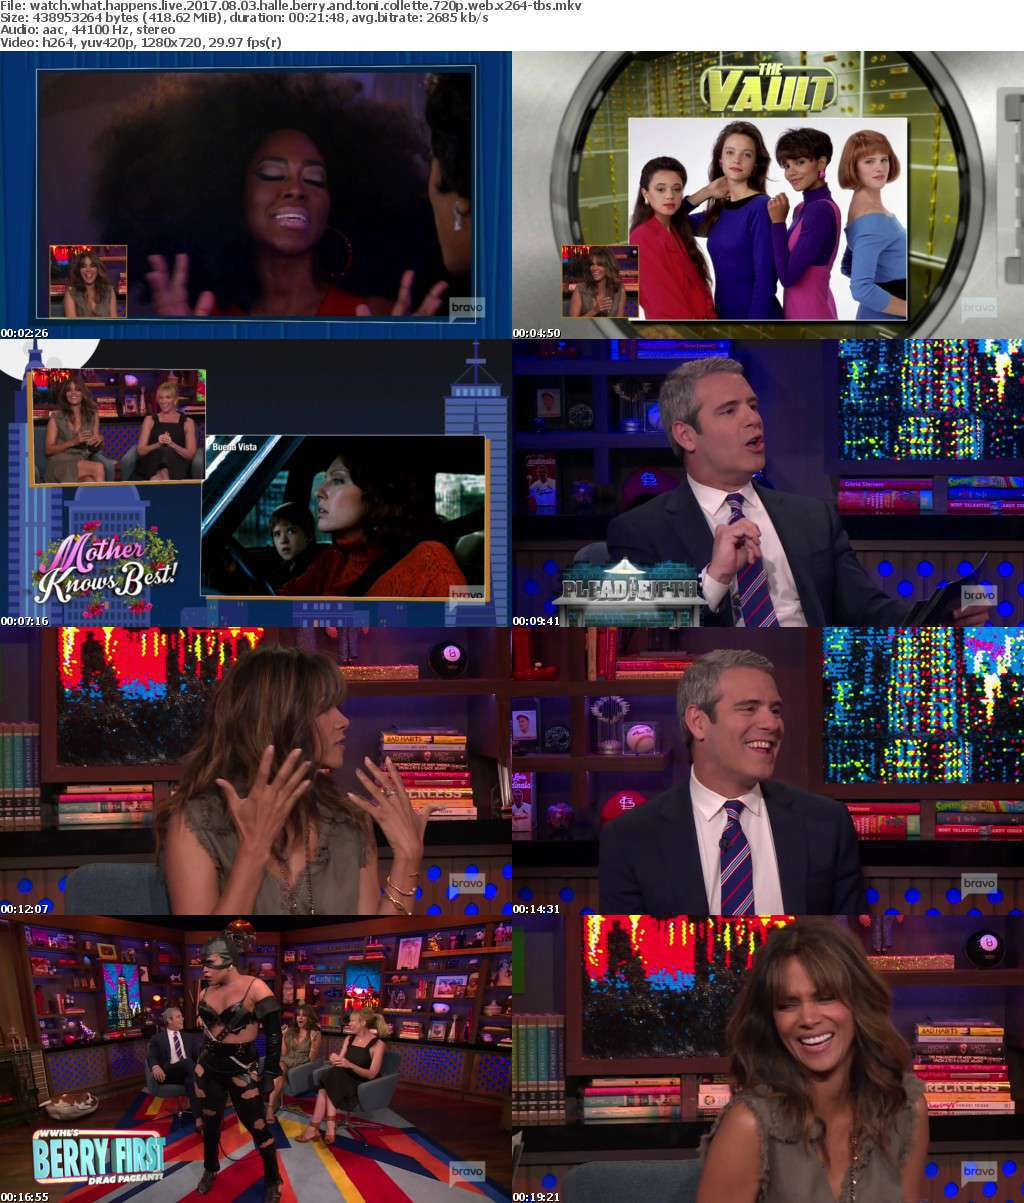 Watch What Happens Live 2017 08 03 Halle Berry and Toni Collette 720p WEB x264-TBS